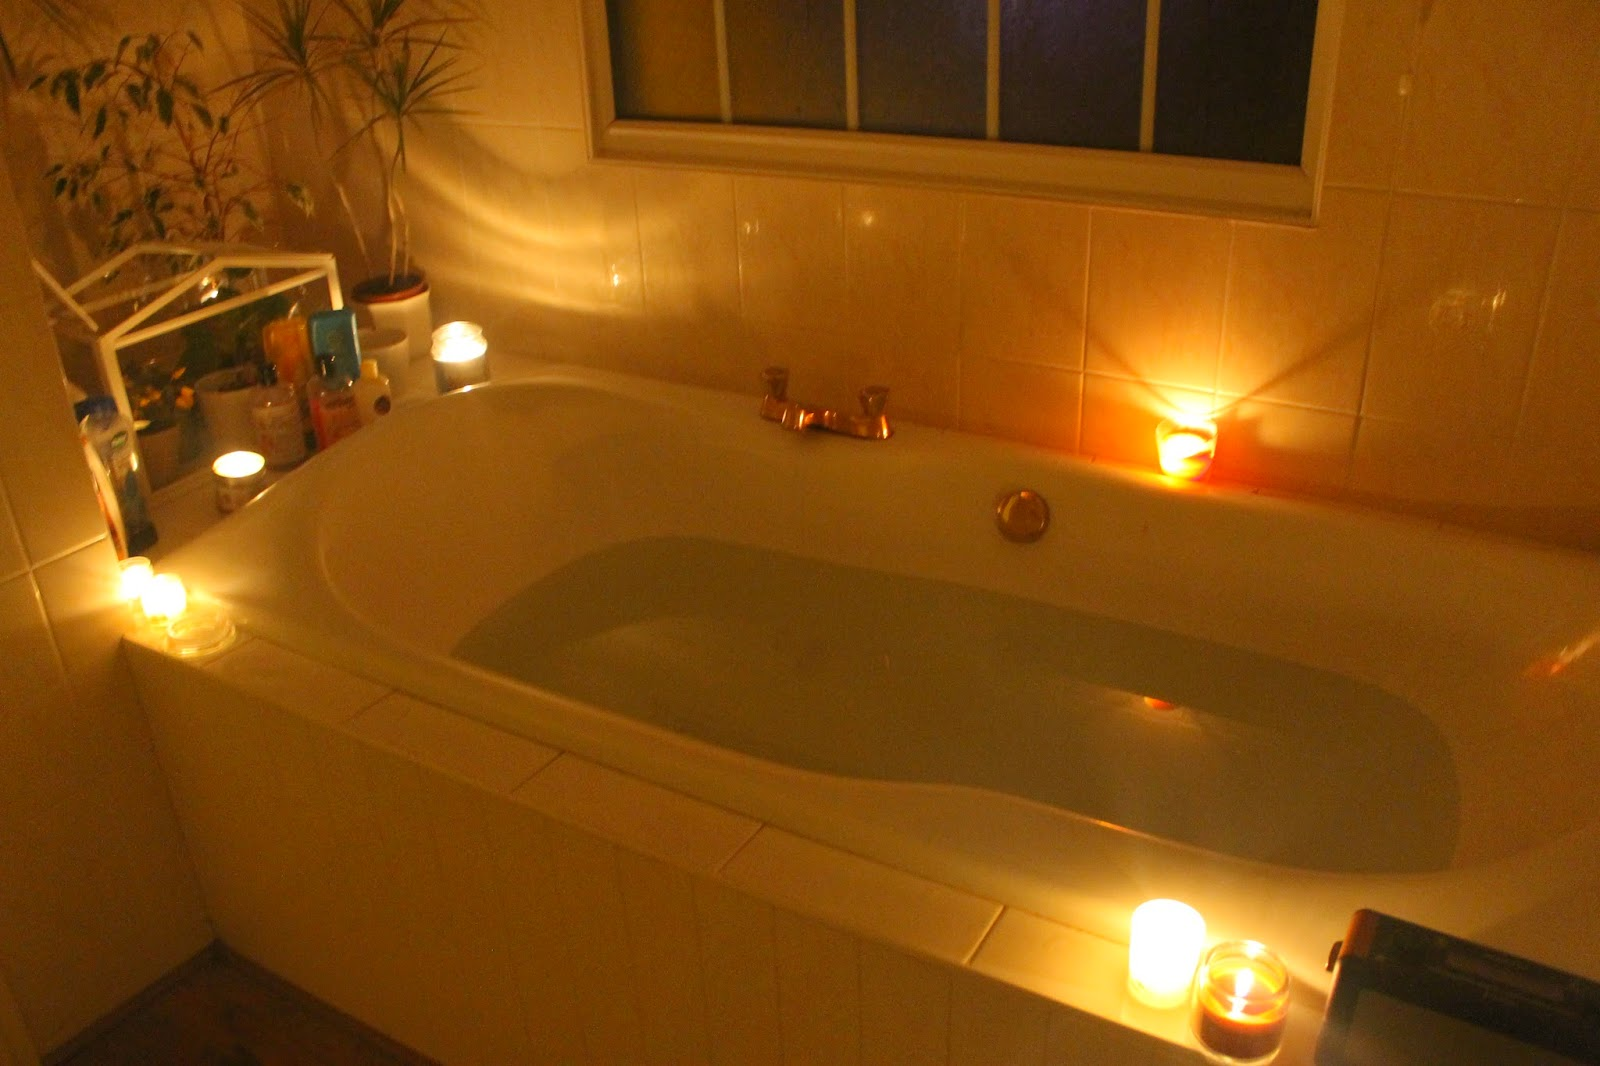 How to relax bath